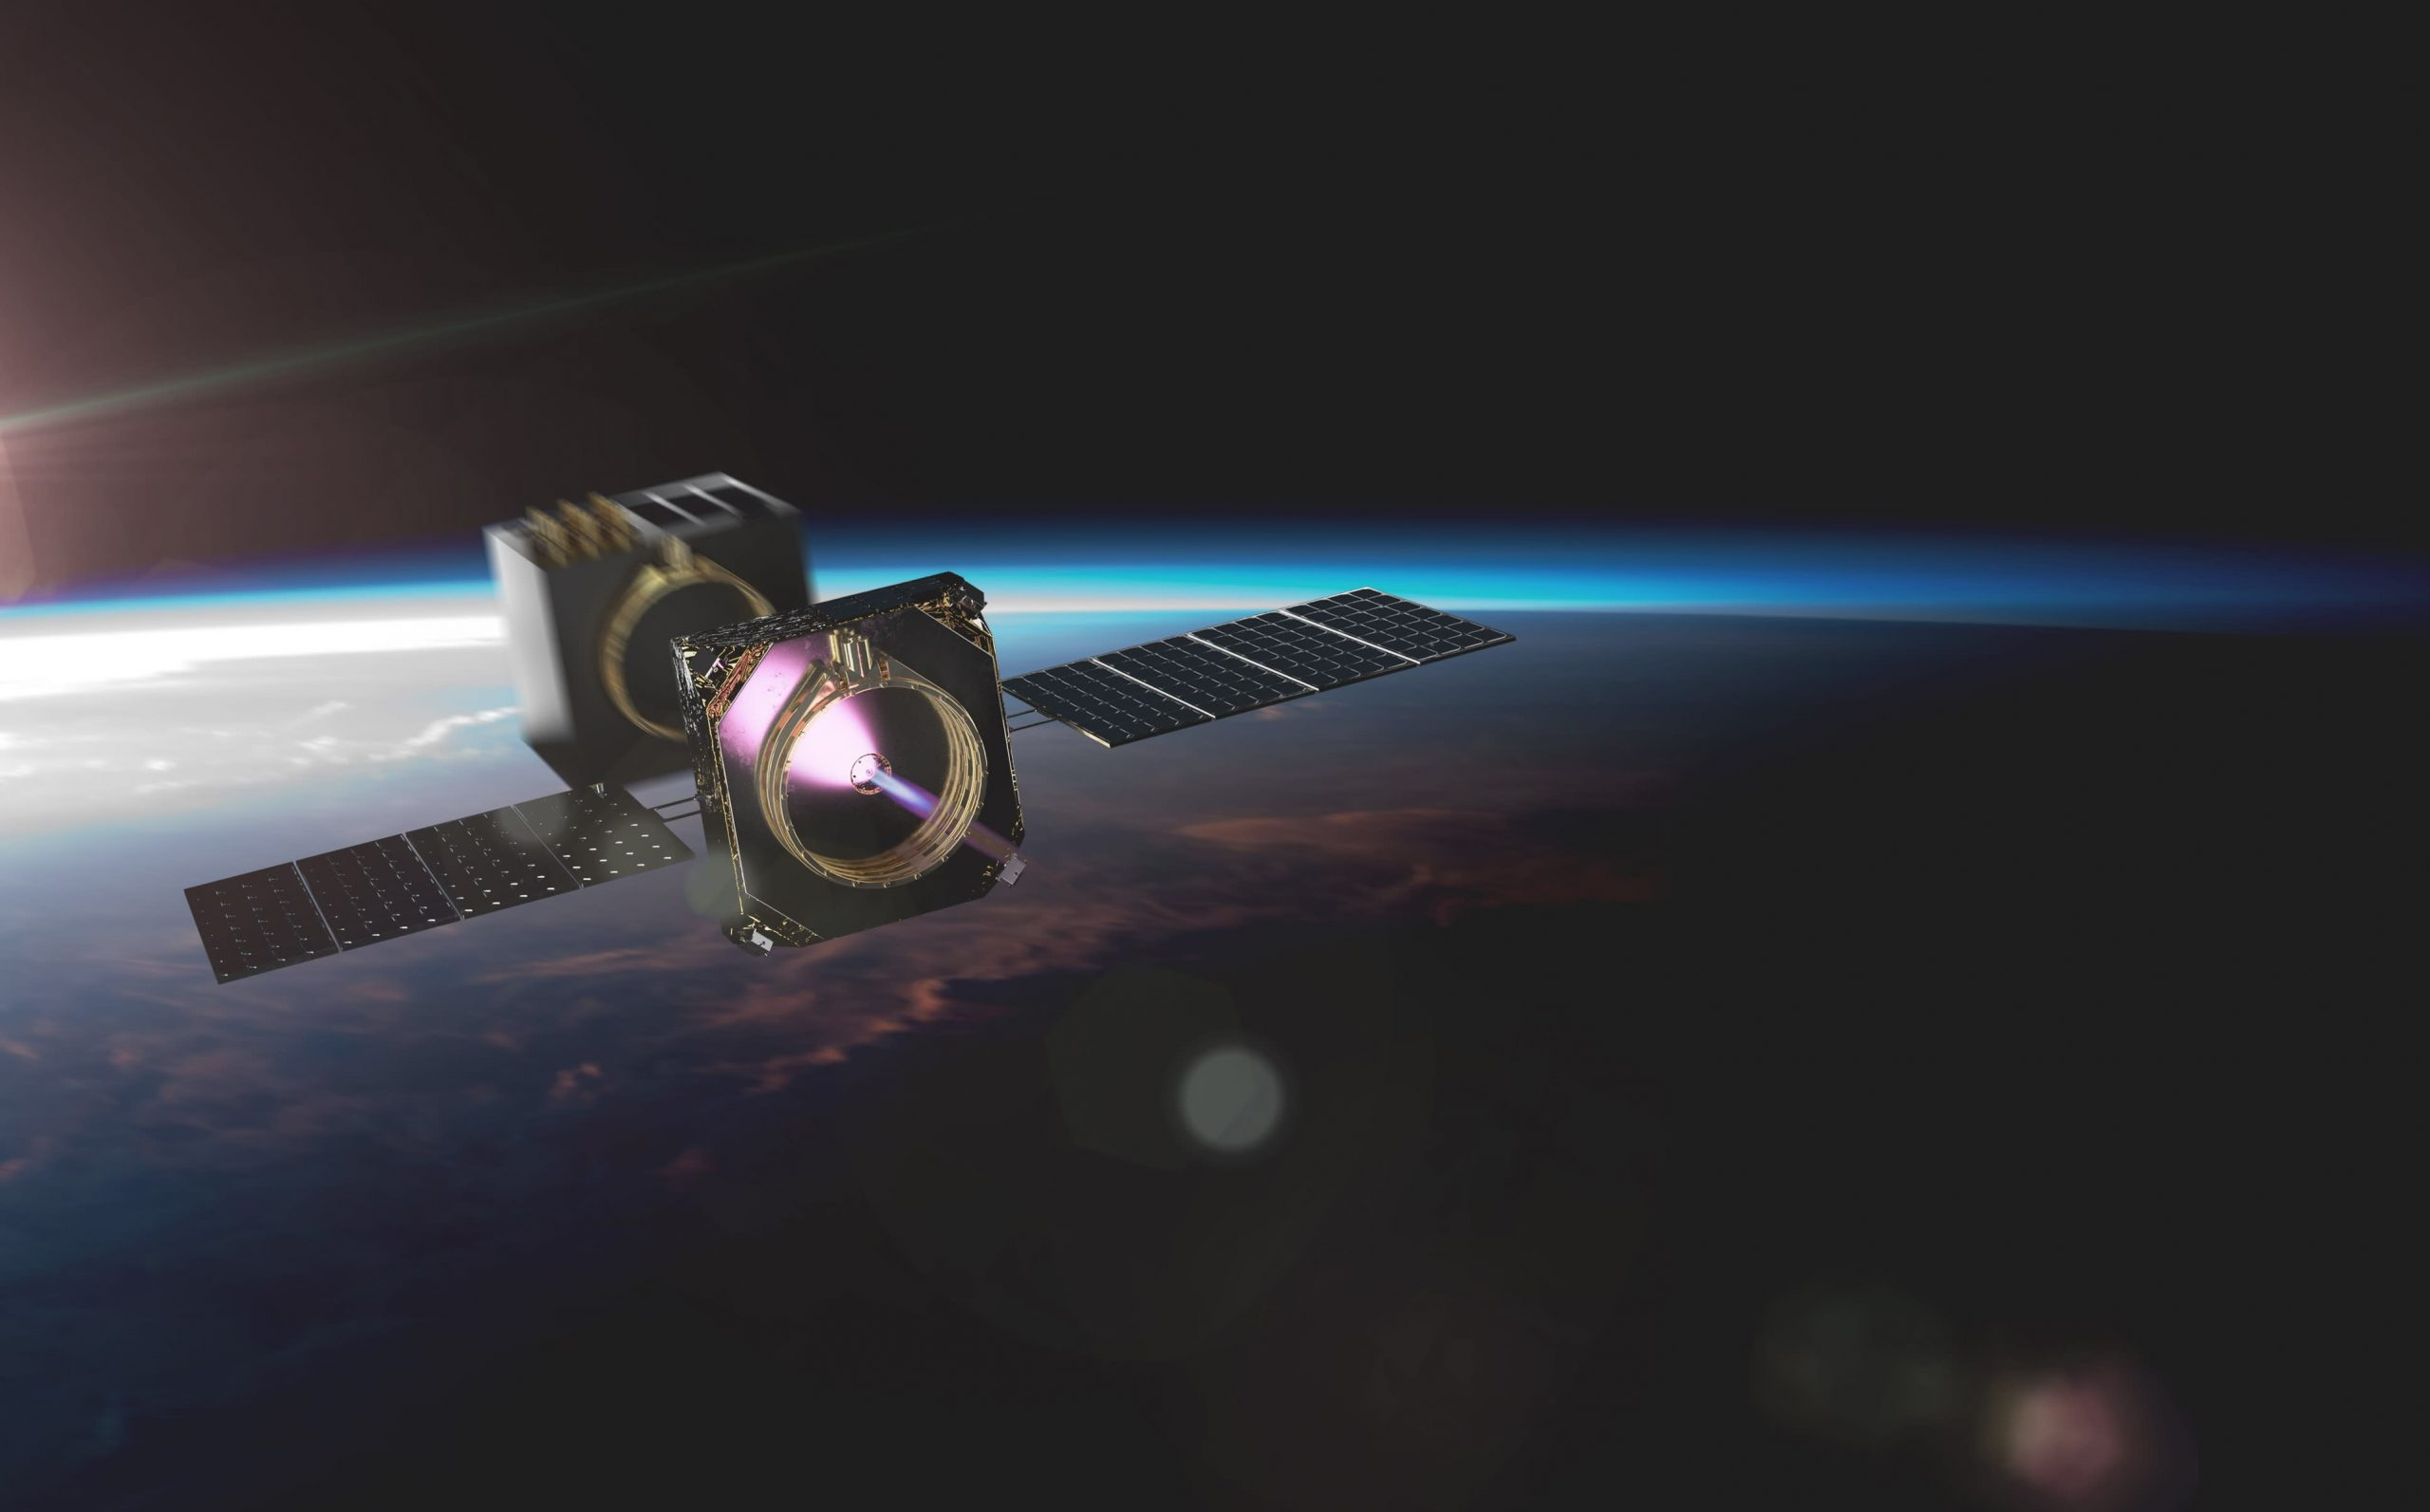 Space company Momentus begins trading on the Nasdaq, with new CEO after turbulent SPAC merger